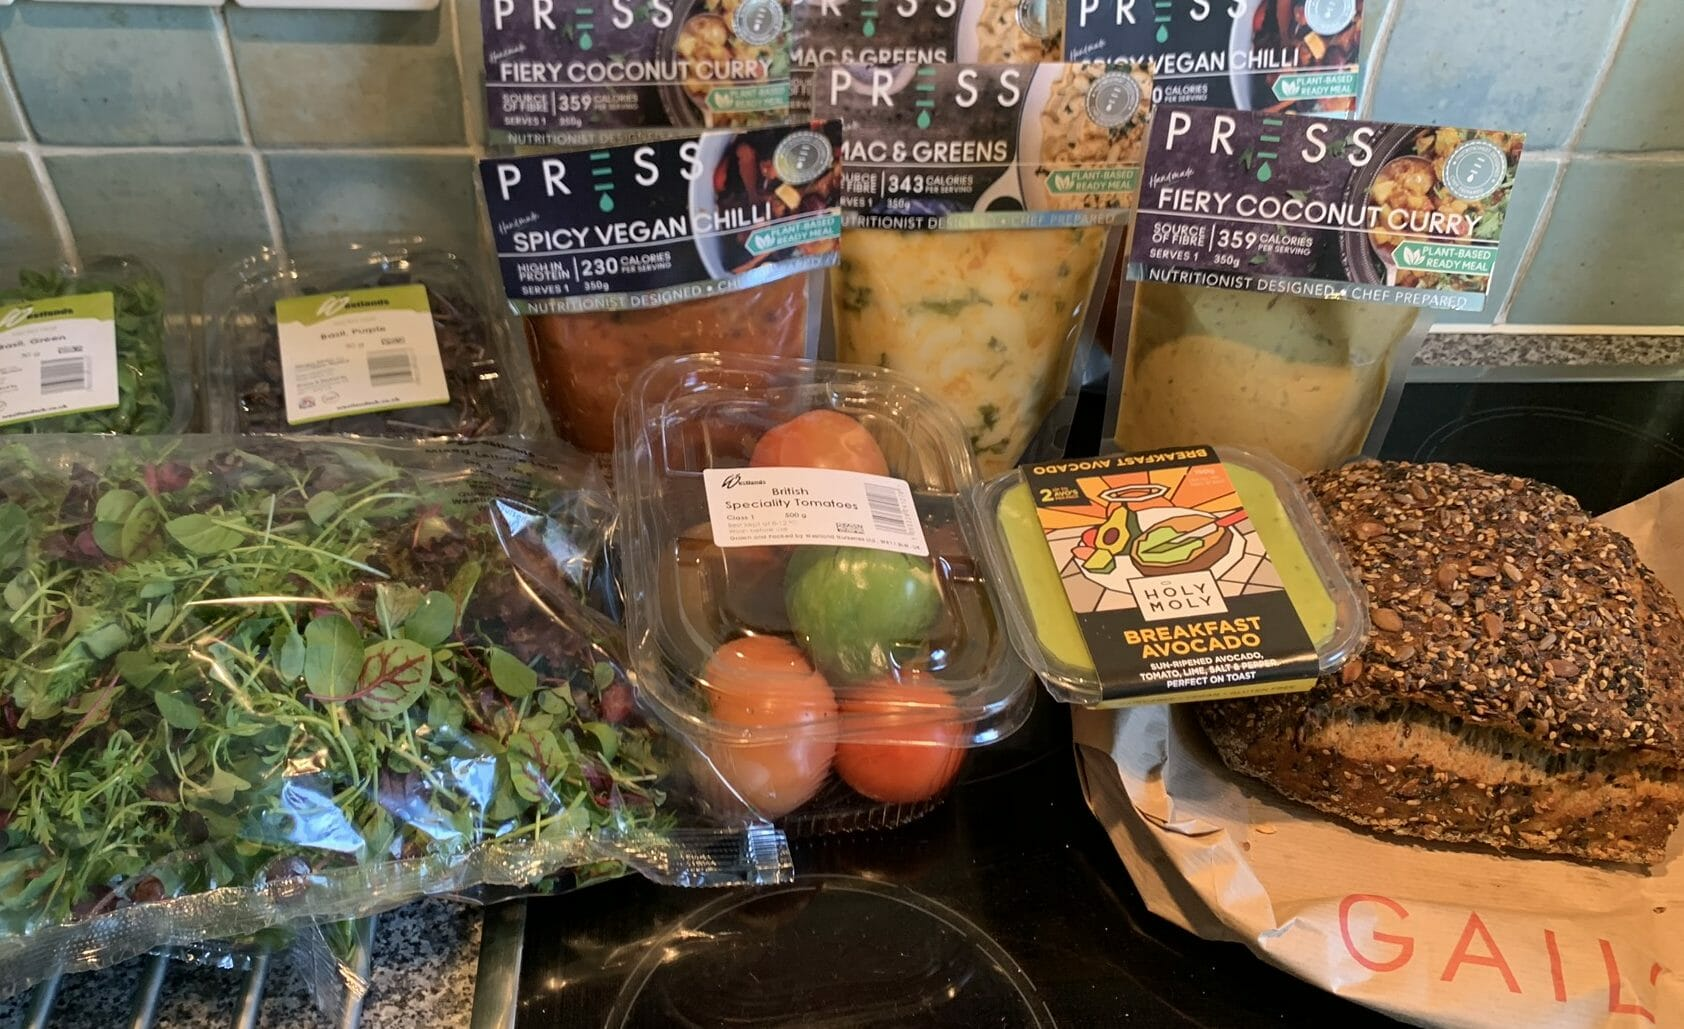 A selection of salad, bread and vegan meals from Press